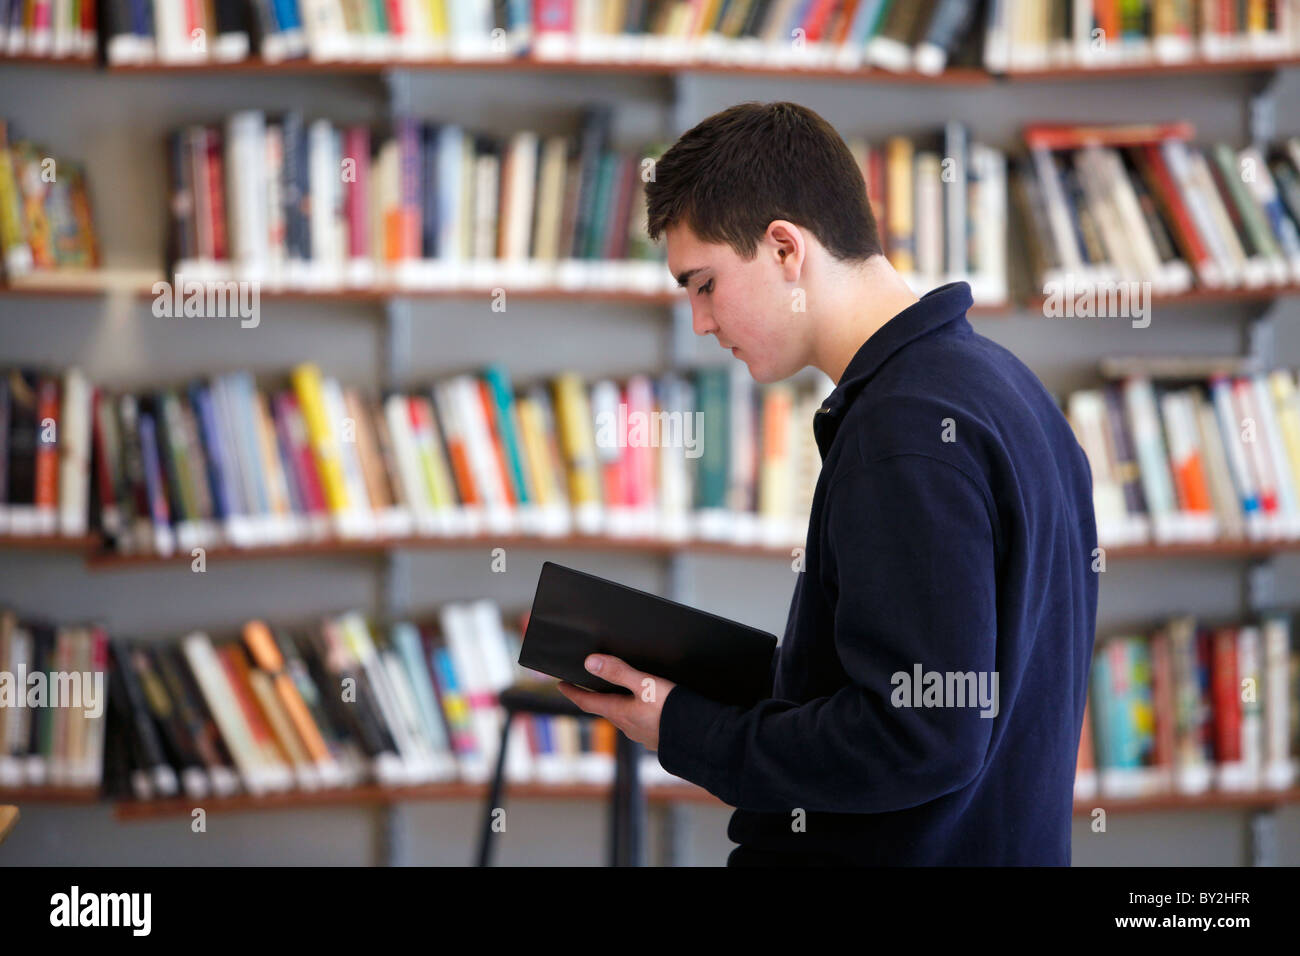 American High School Student Reading In Front Of Bookshelves